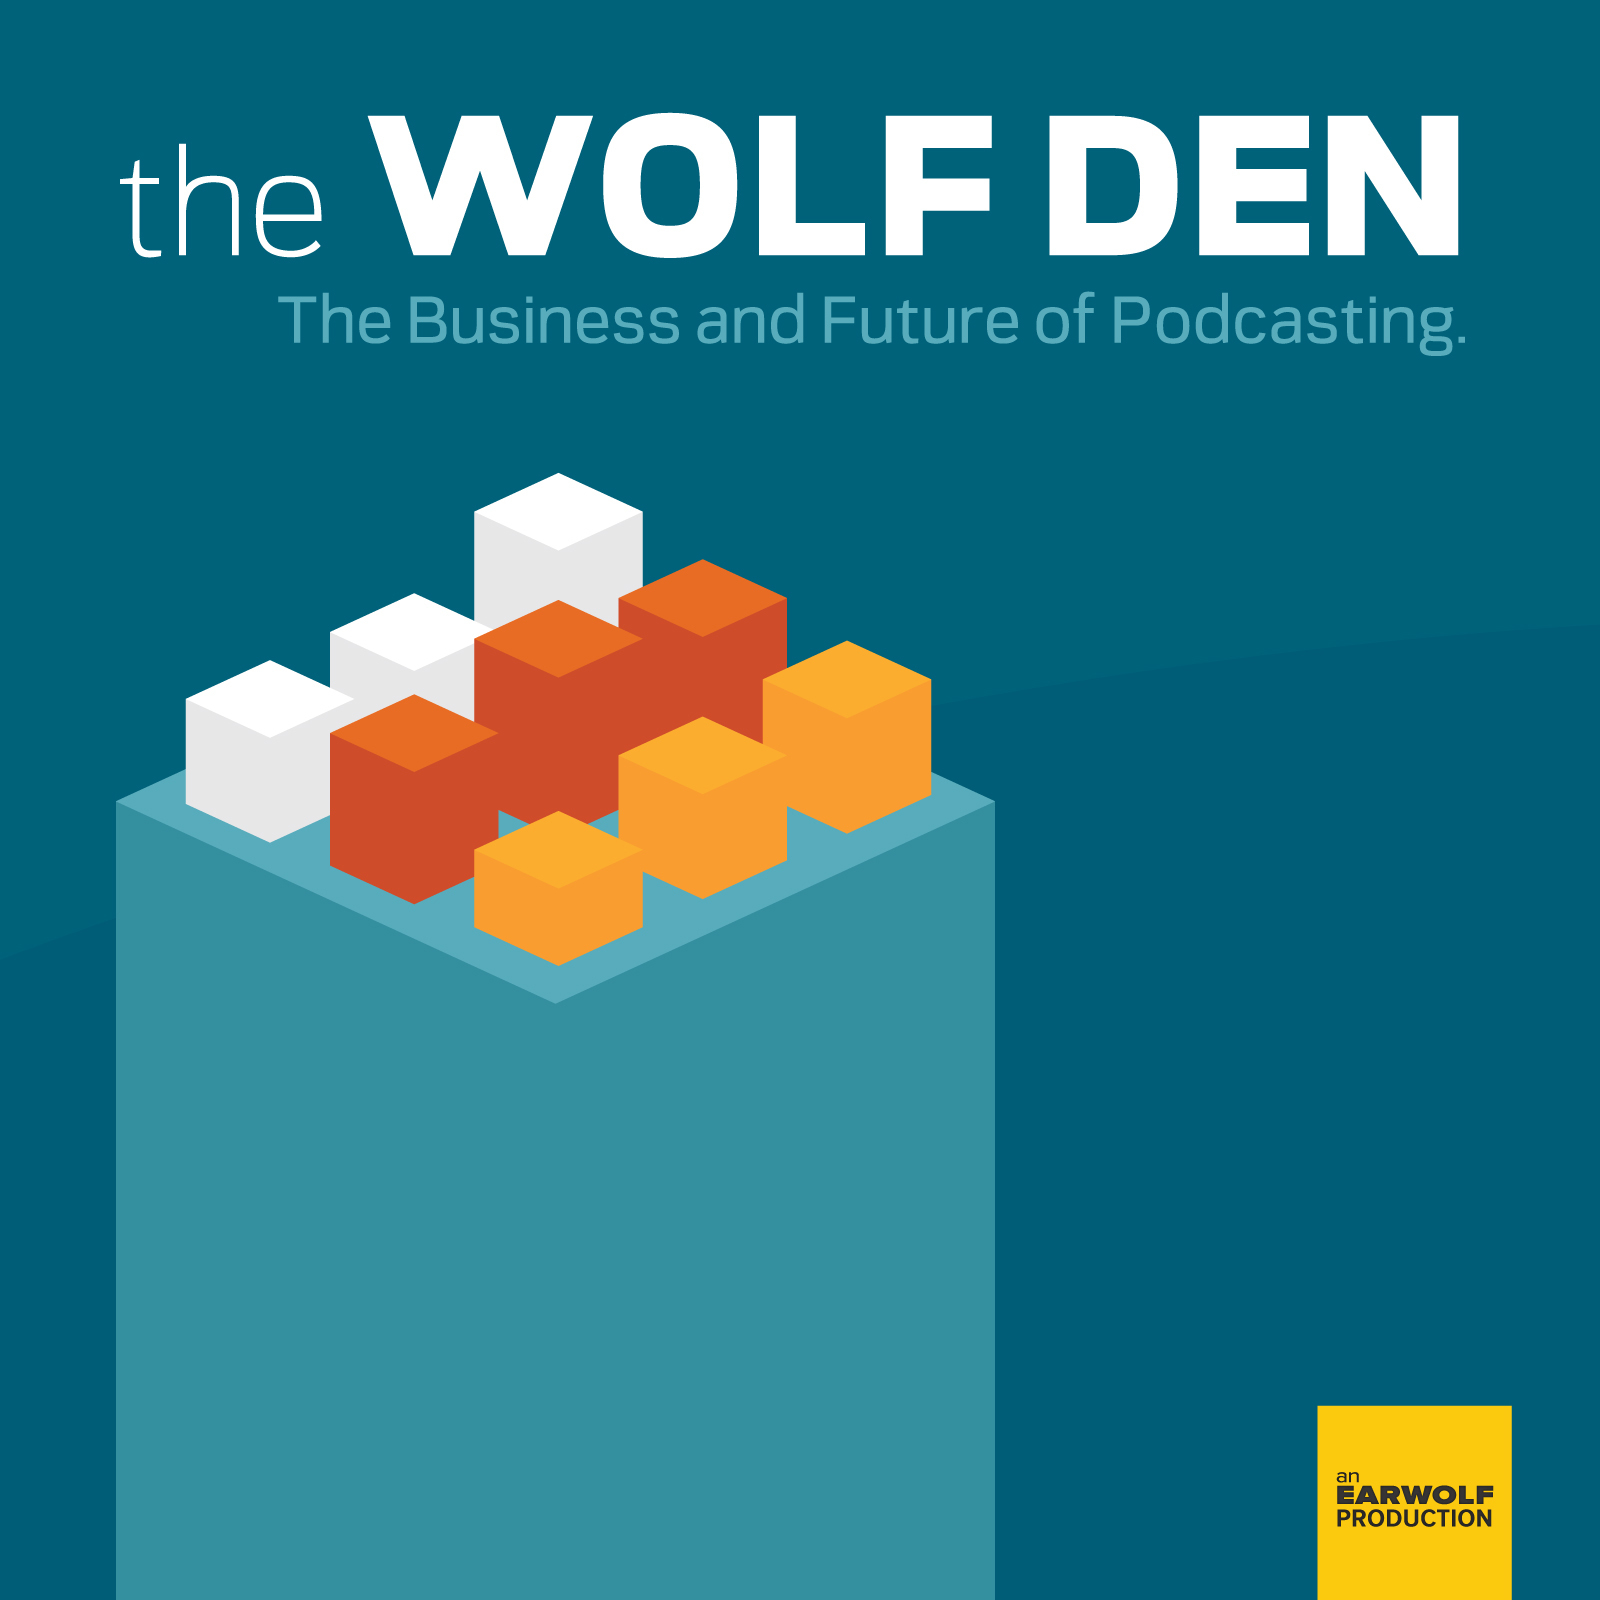 The Wolf Den by Earwolf on Apple Podcasts